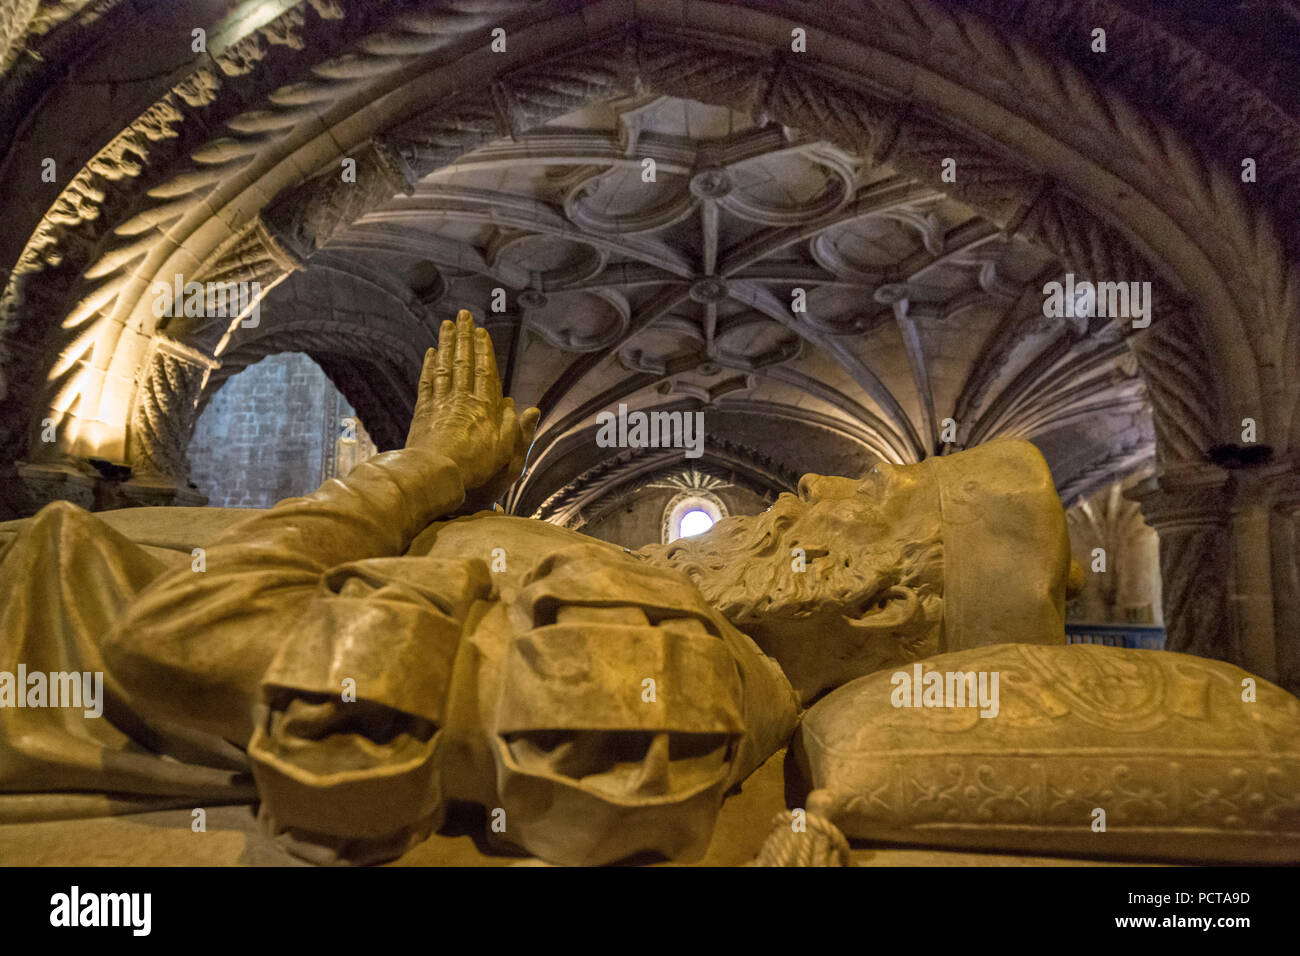 Tomb of the discoverer Vasco da Gama, Mosteiro dos Jerónimos, UNESCO World Heritage Site, Lisbon, Lisbon District, Portugal, Europe - Stock Image